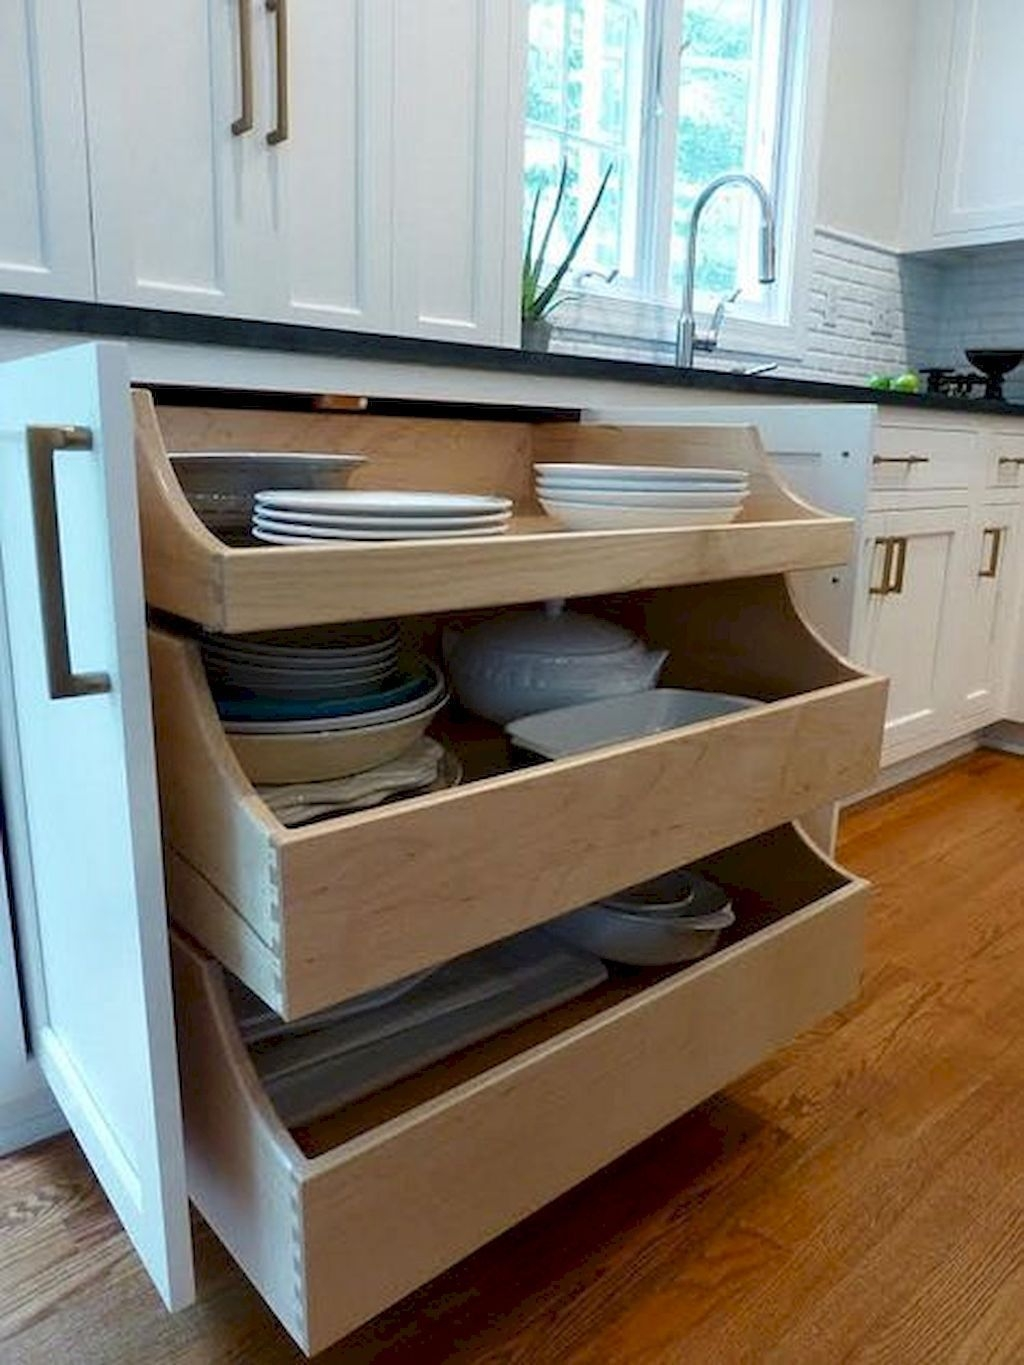 Inspiring Kitchen Storage Design Ideas 36